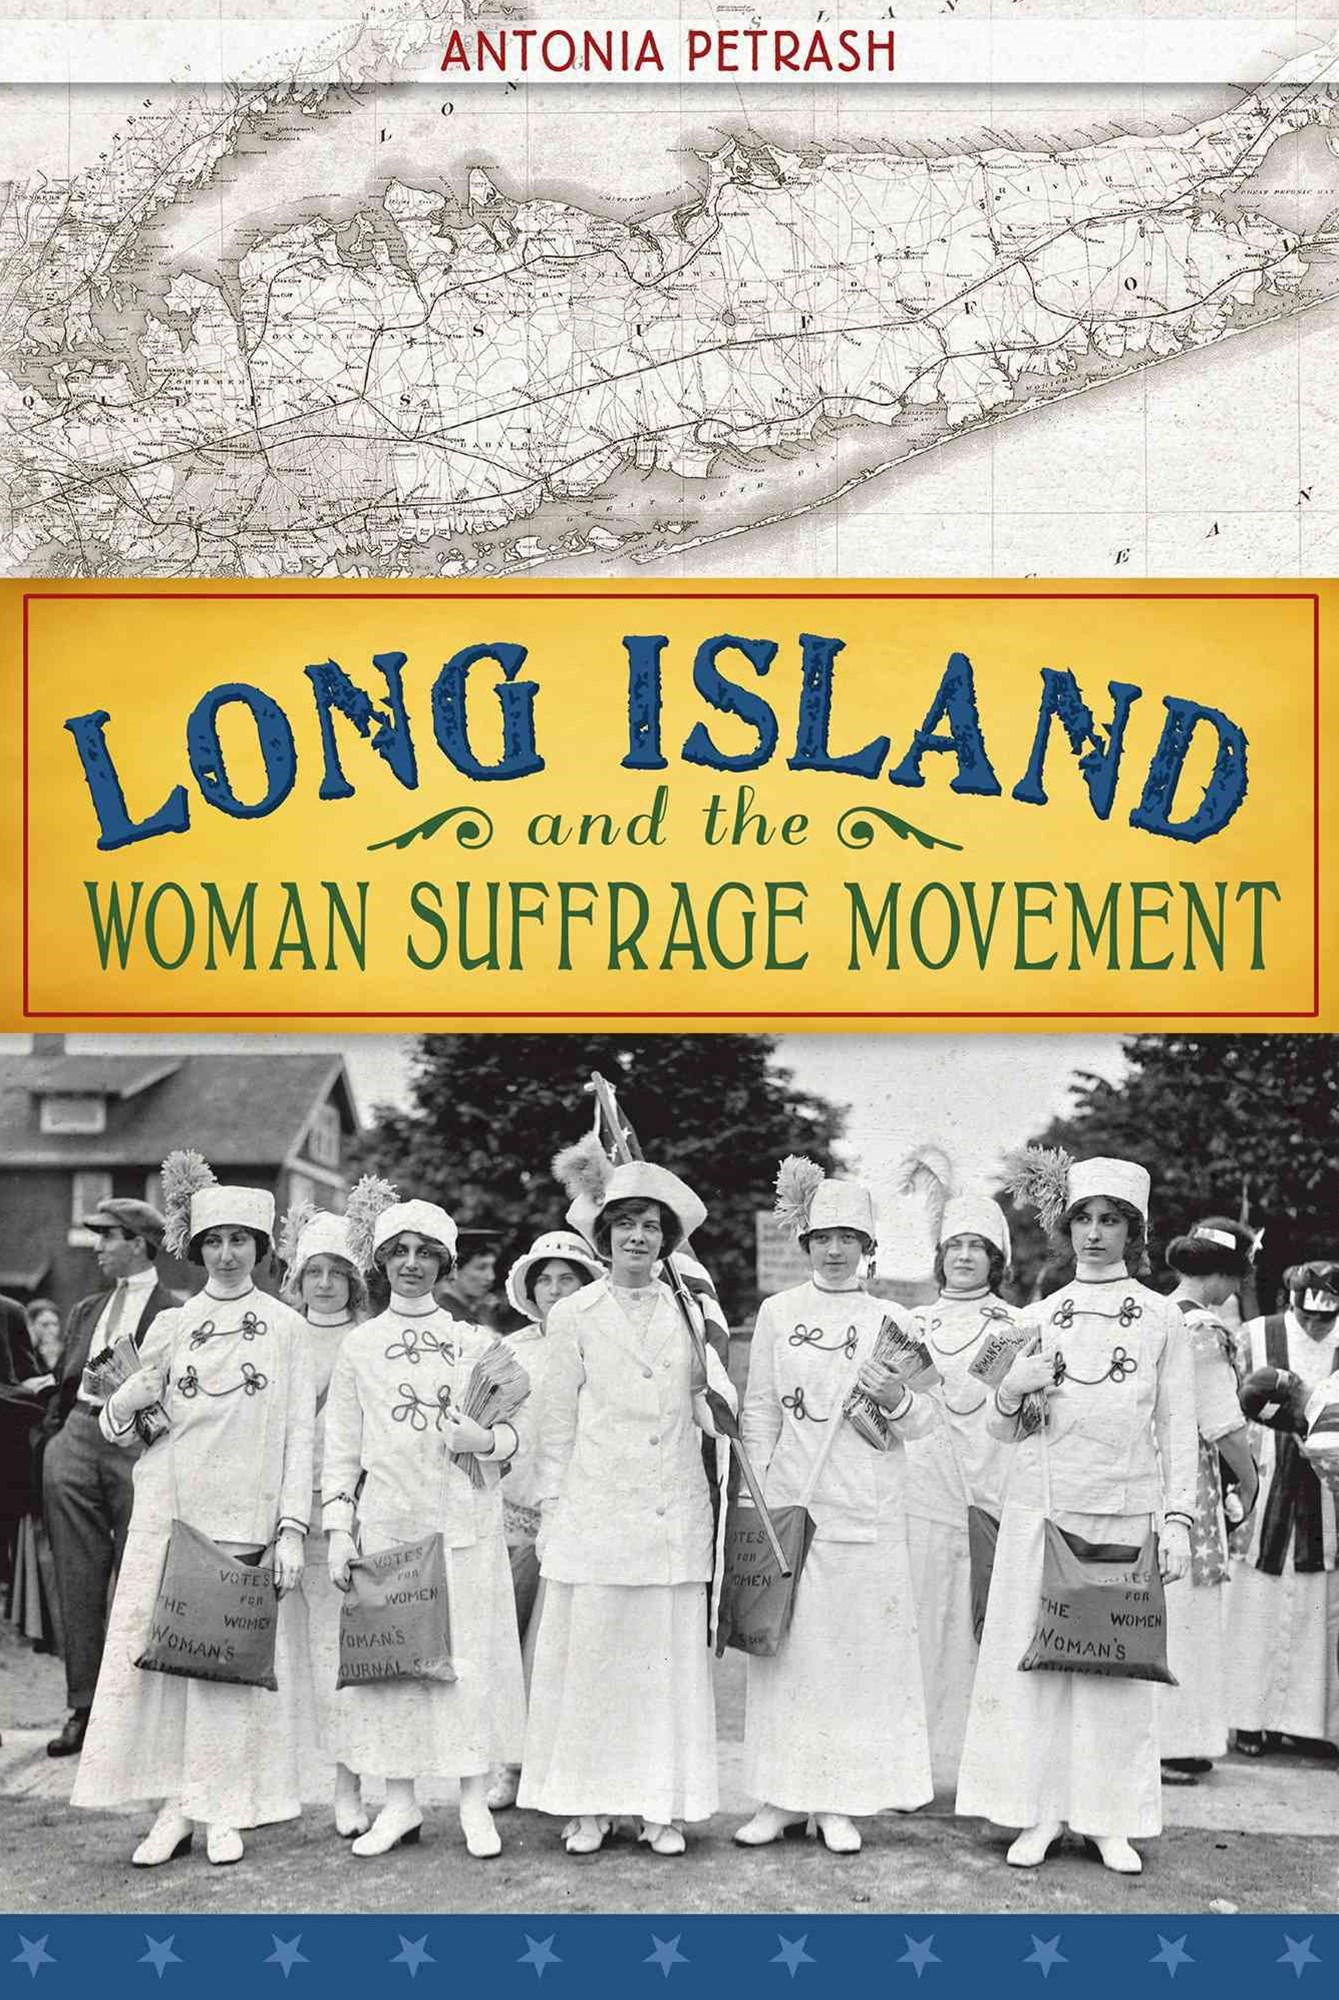 Long Island and the Woman Suffrage Movement